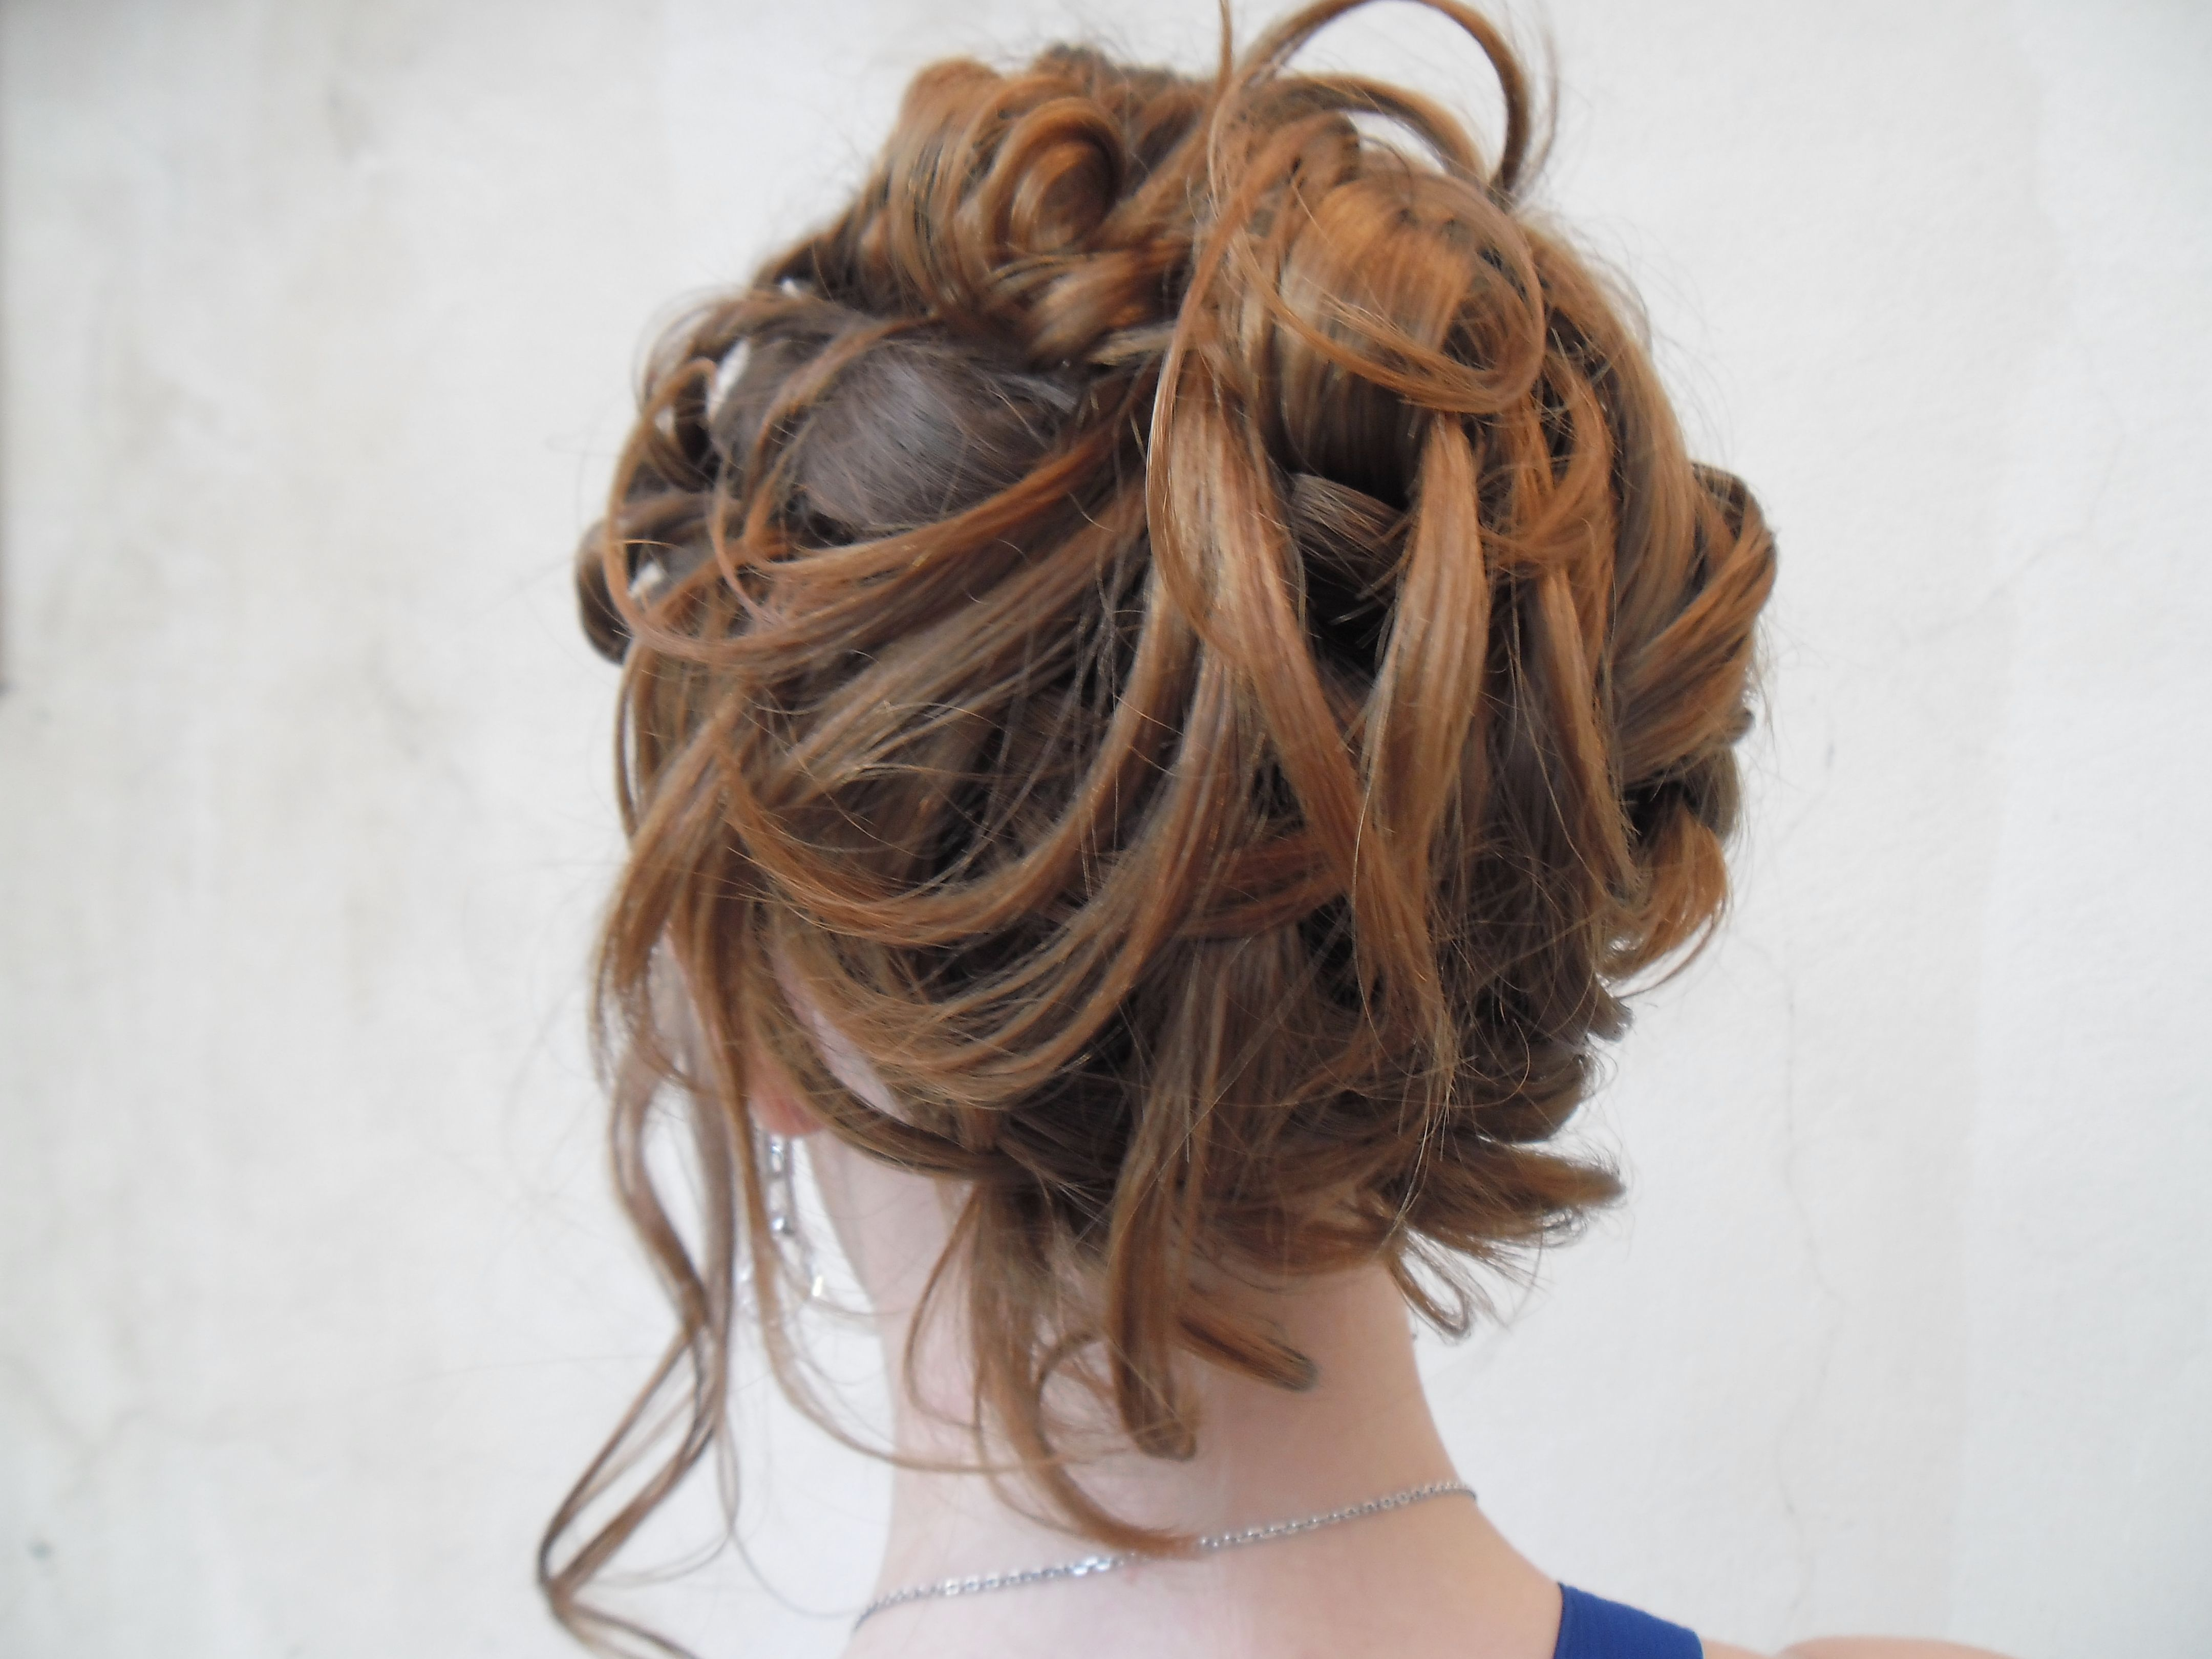 my prom hairstyle | hairstyles | pinterest | prom hairstyles, prom